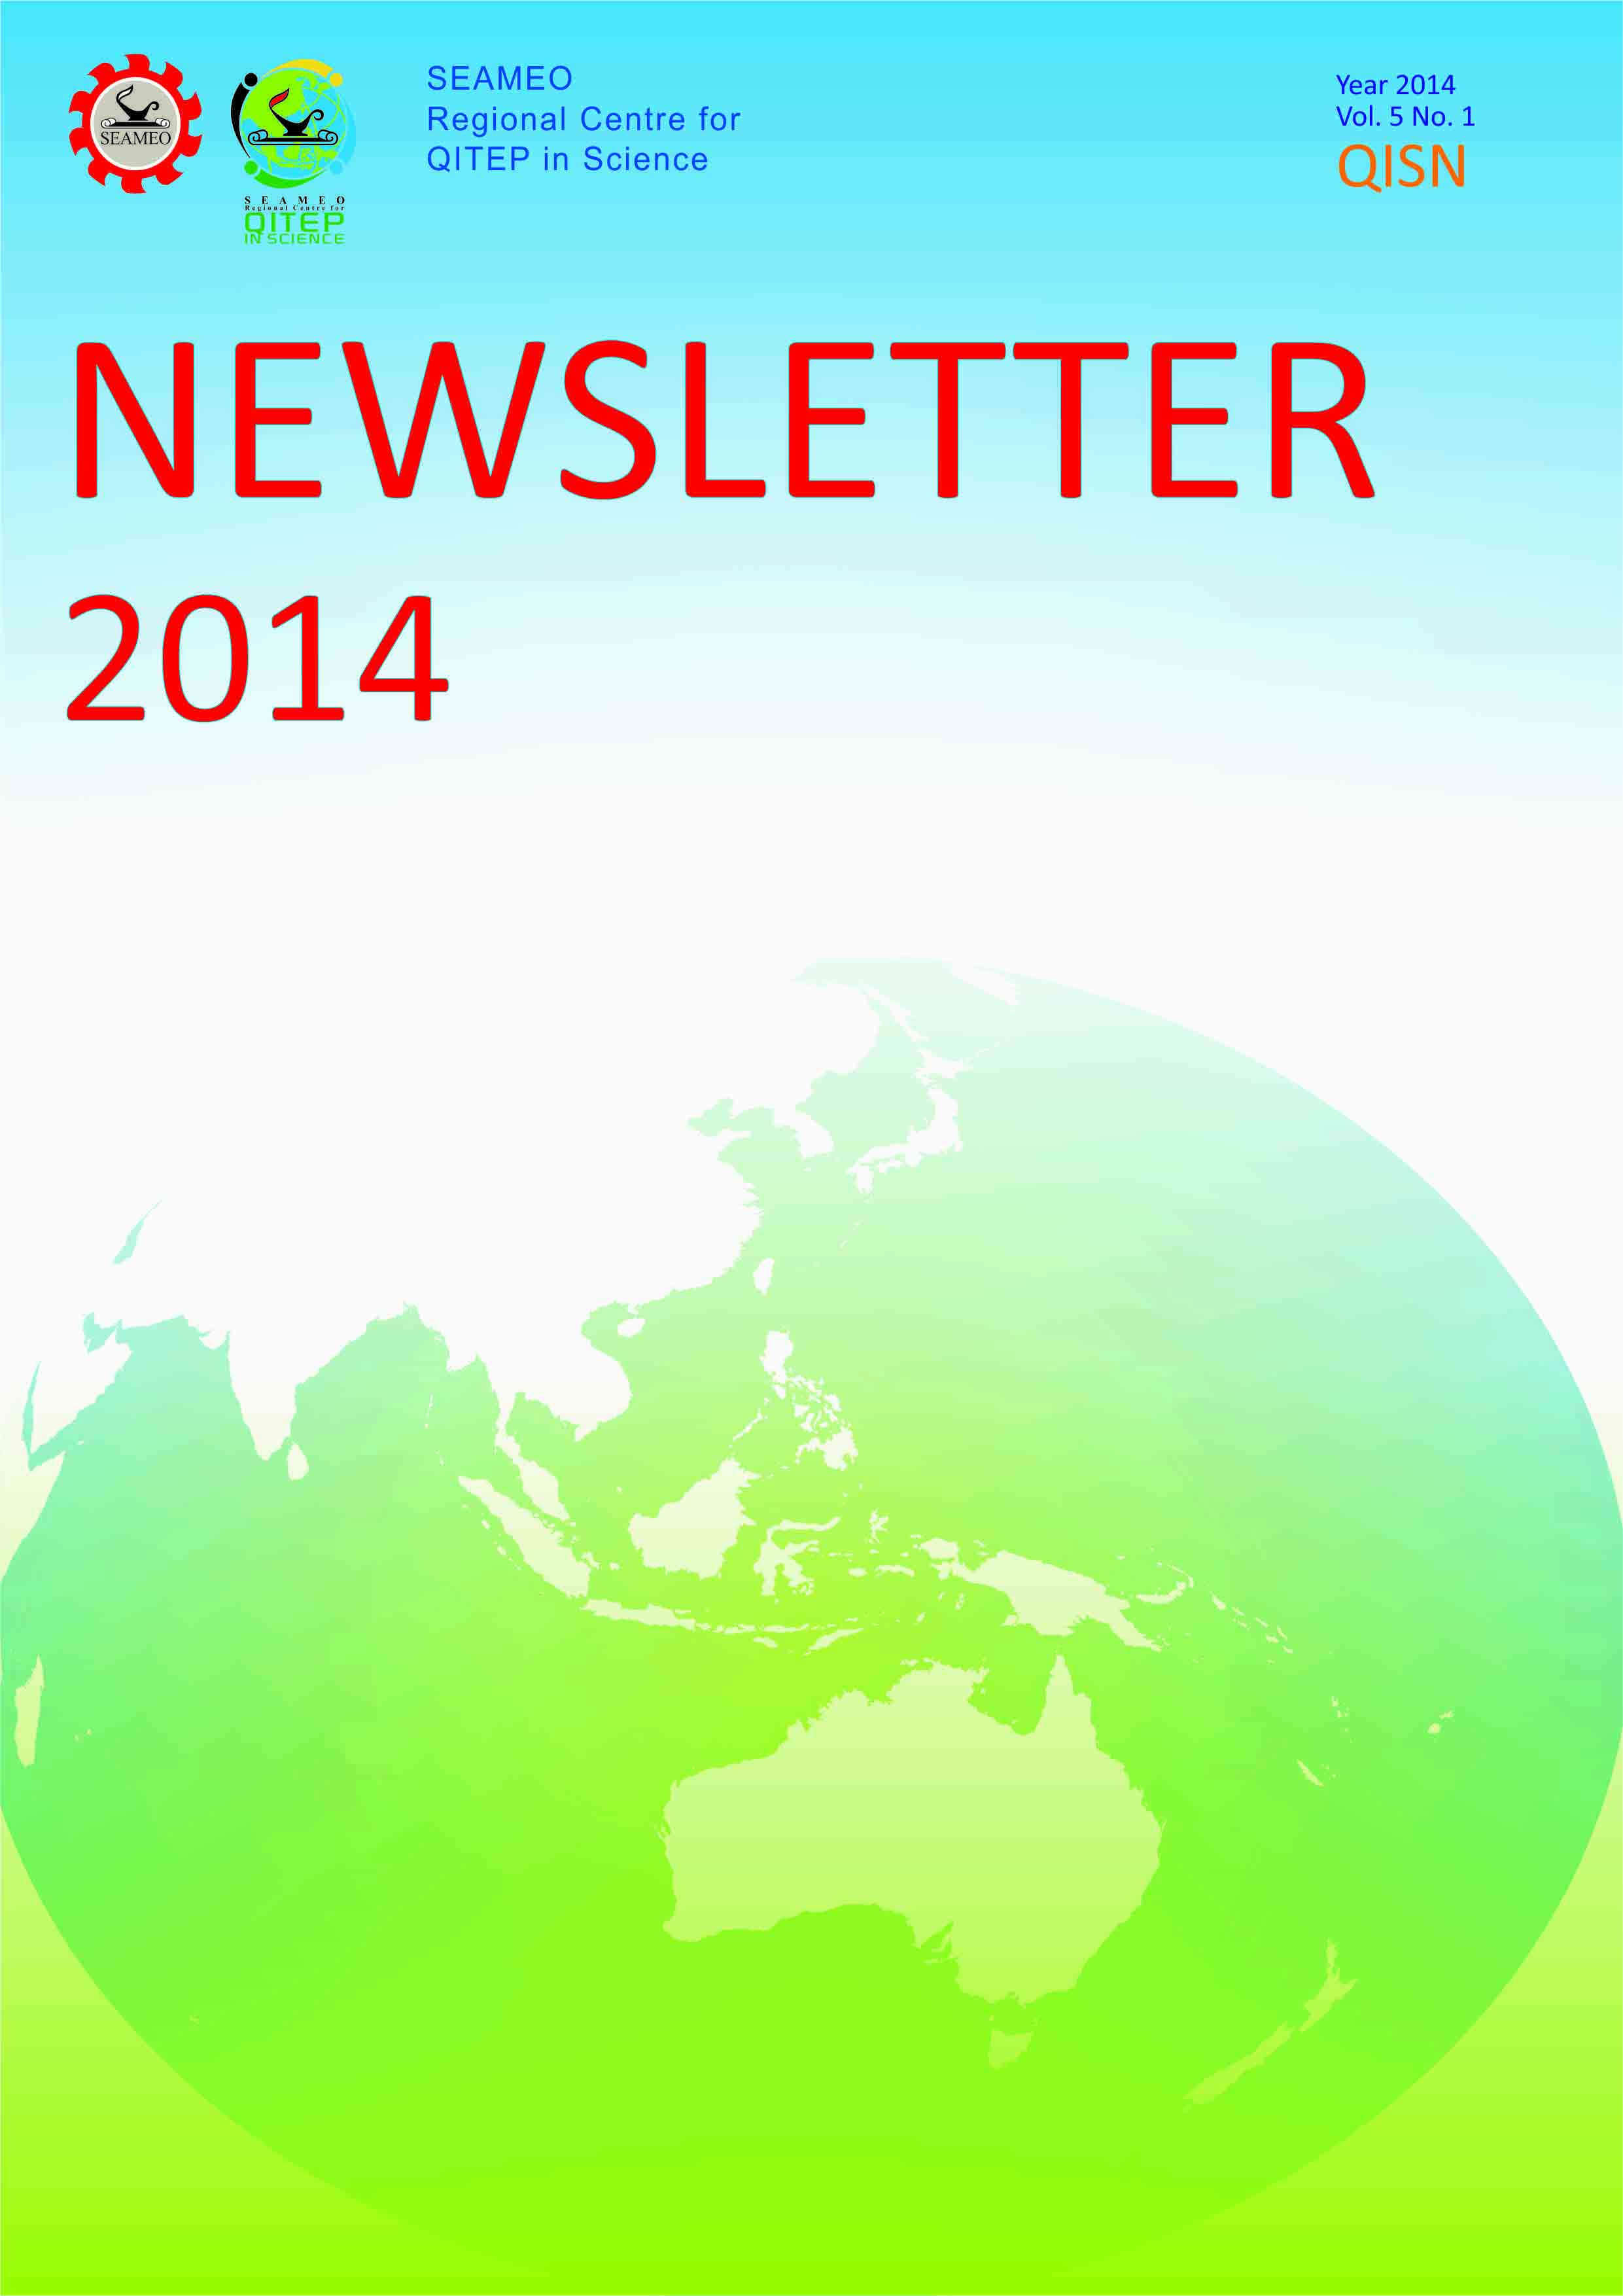 SEAQIS Newsletter Vol 5 No 1 2014